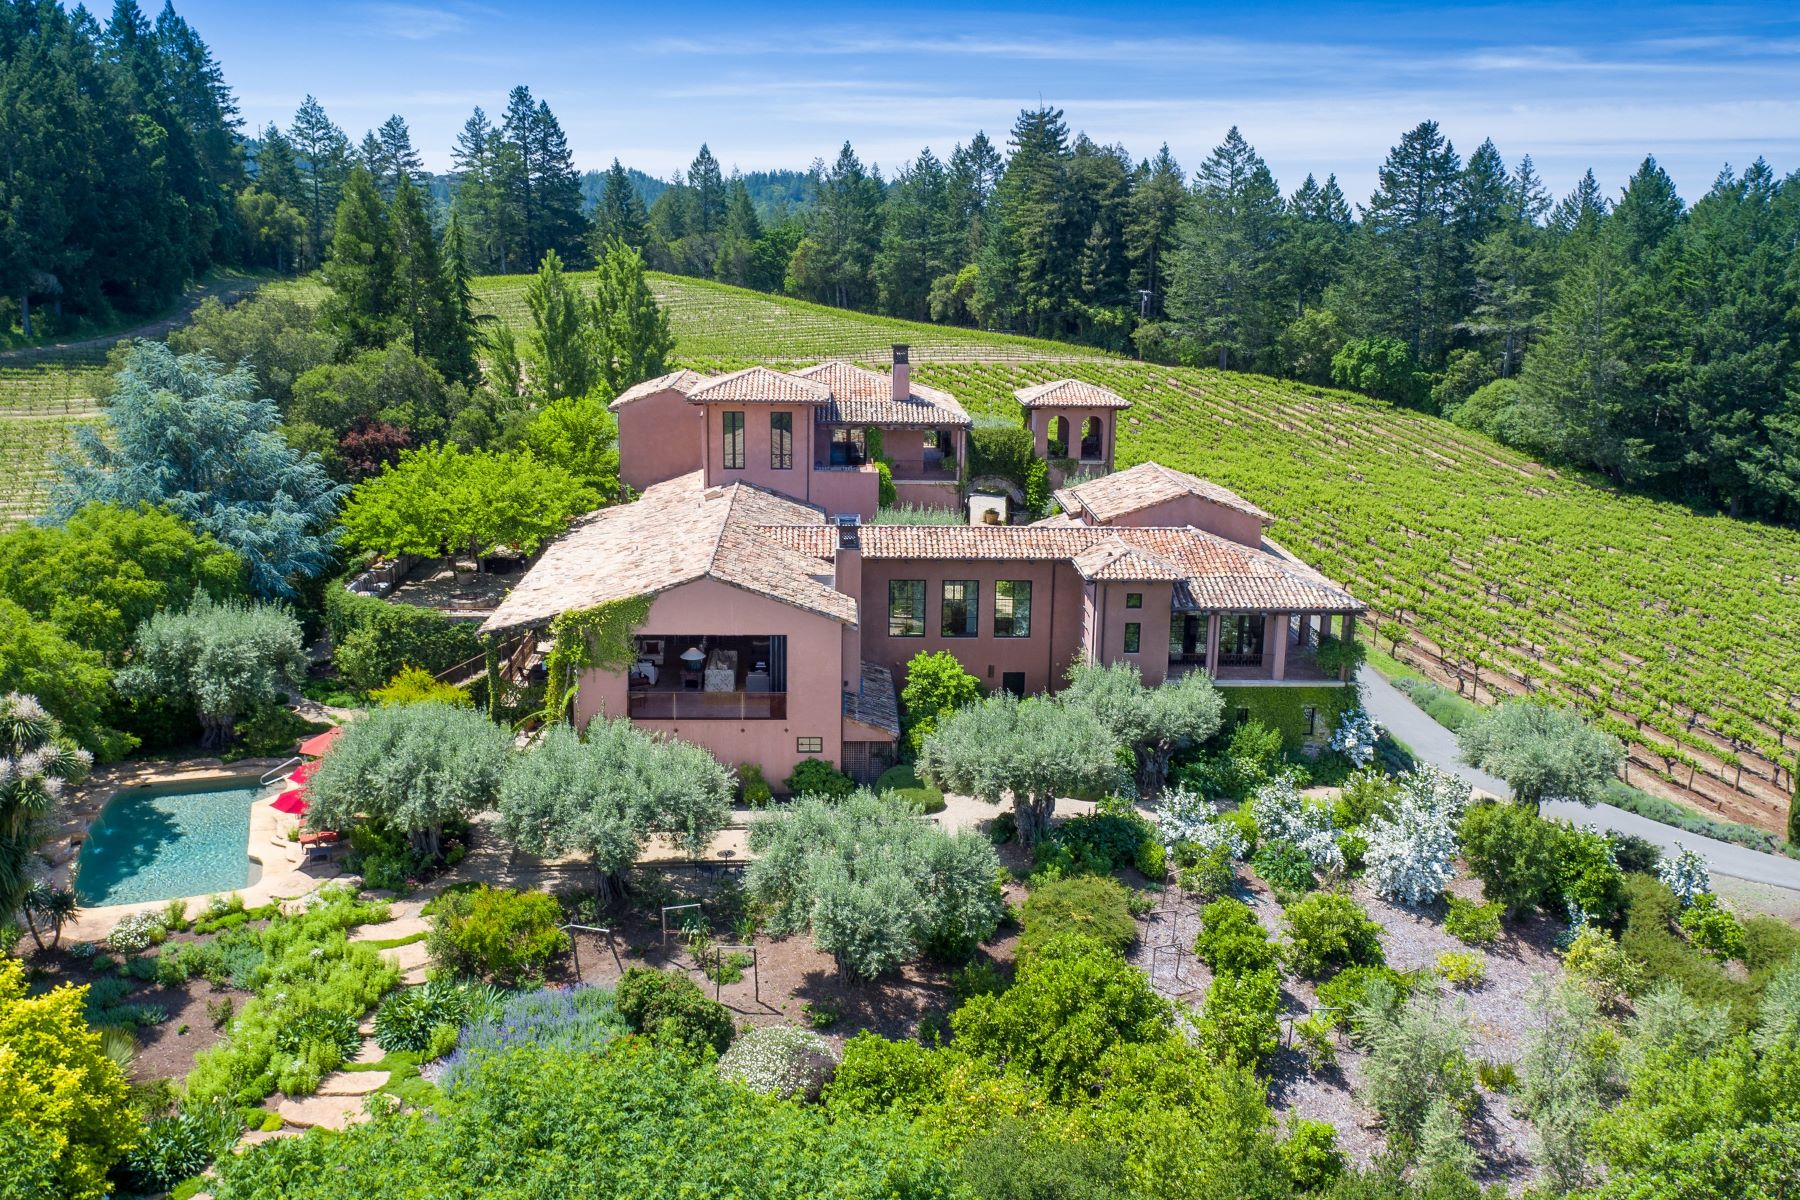 Single Family Home for Sale at Prized Hilltop Villa and Vineyard 5800 Petrified Forest Road Calistoga, California 94515 United States